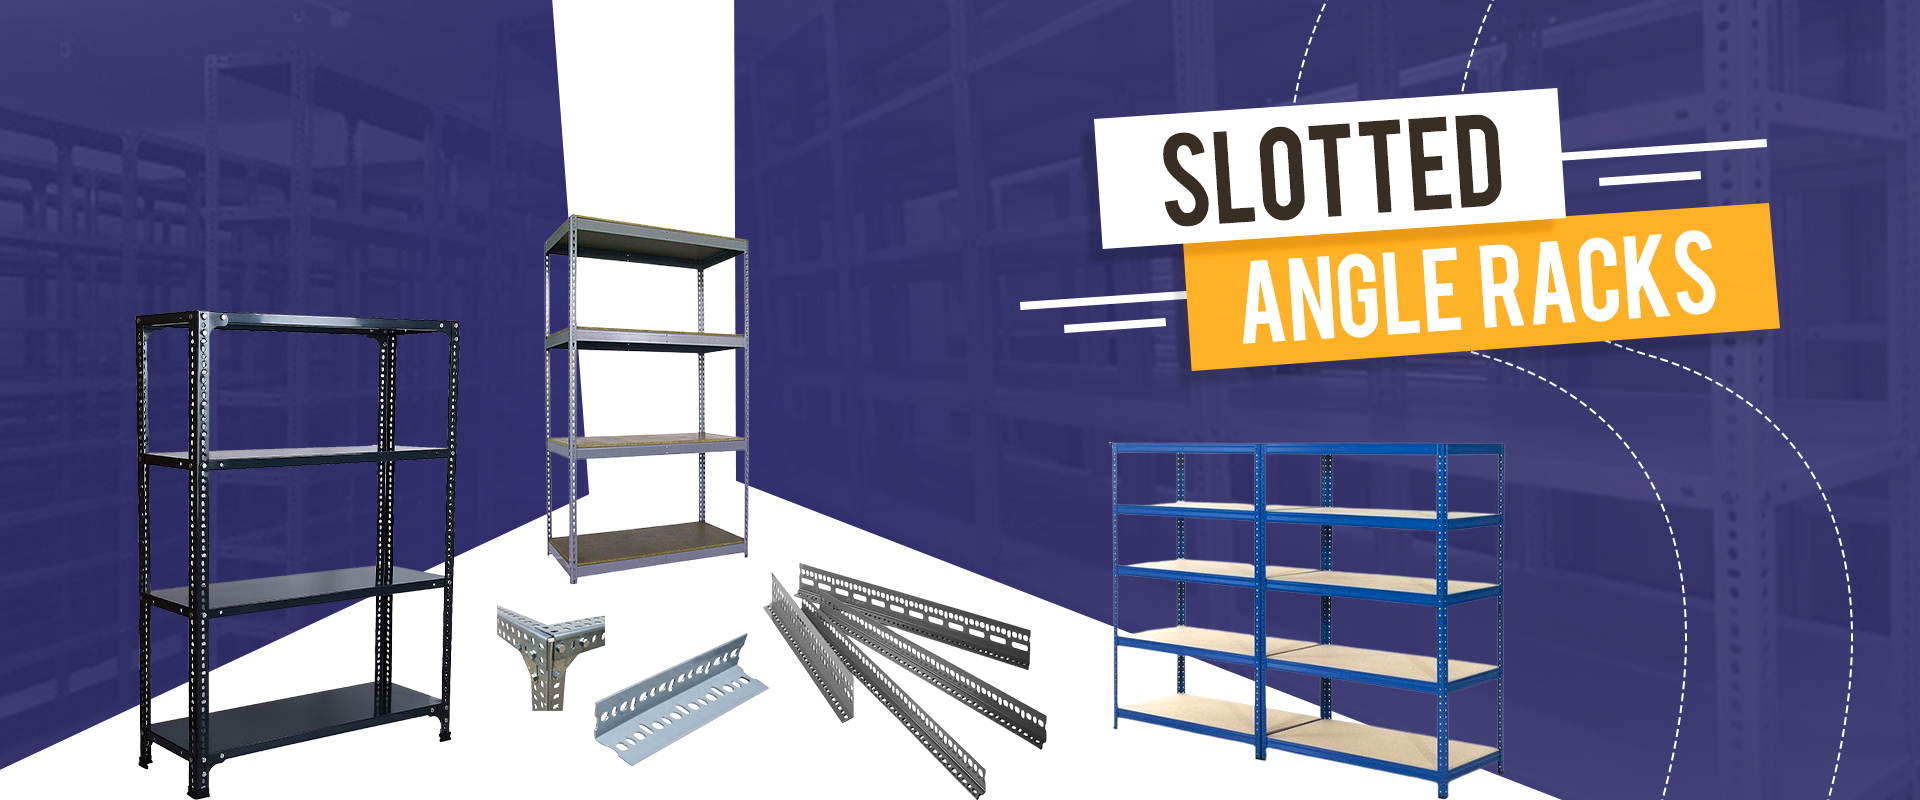 Slotted Angle Racks In Dhanbad